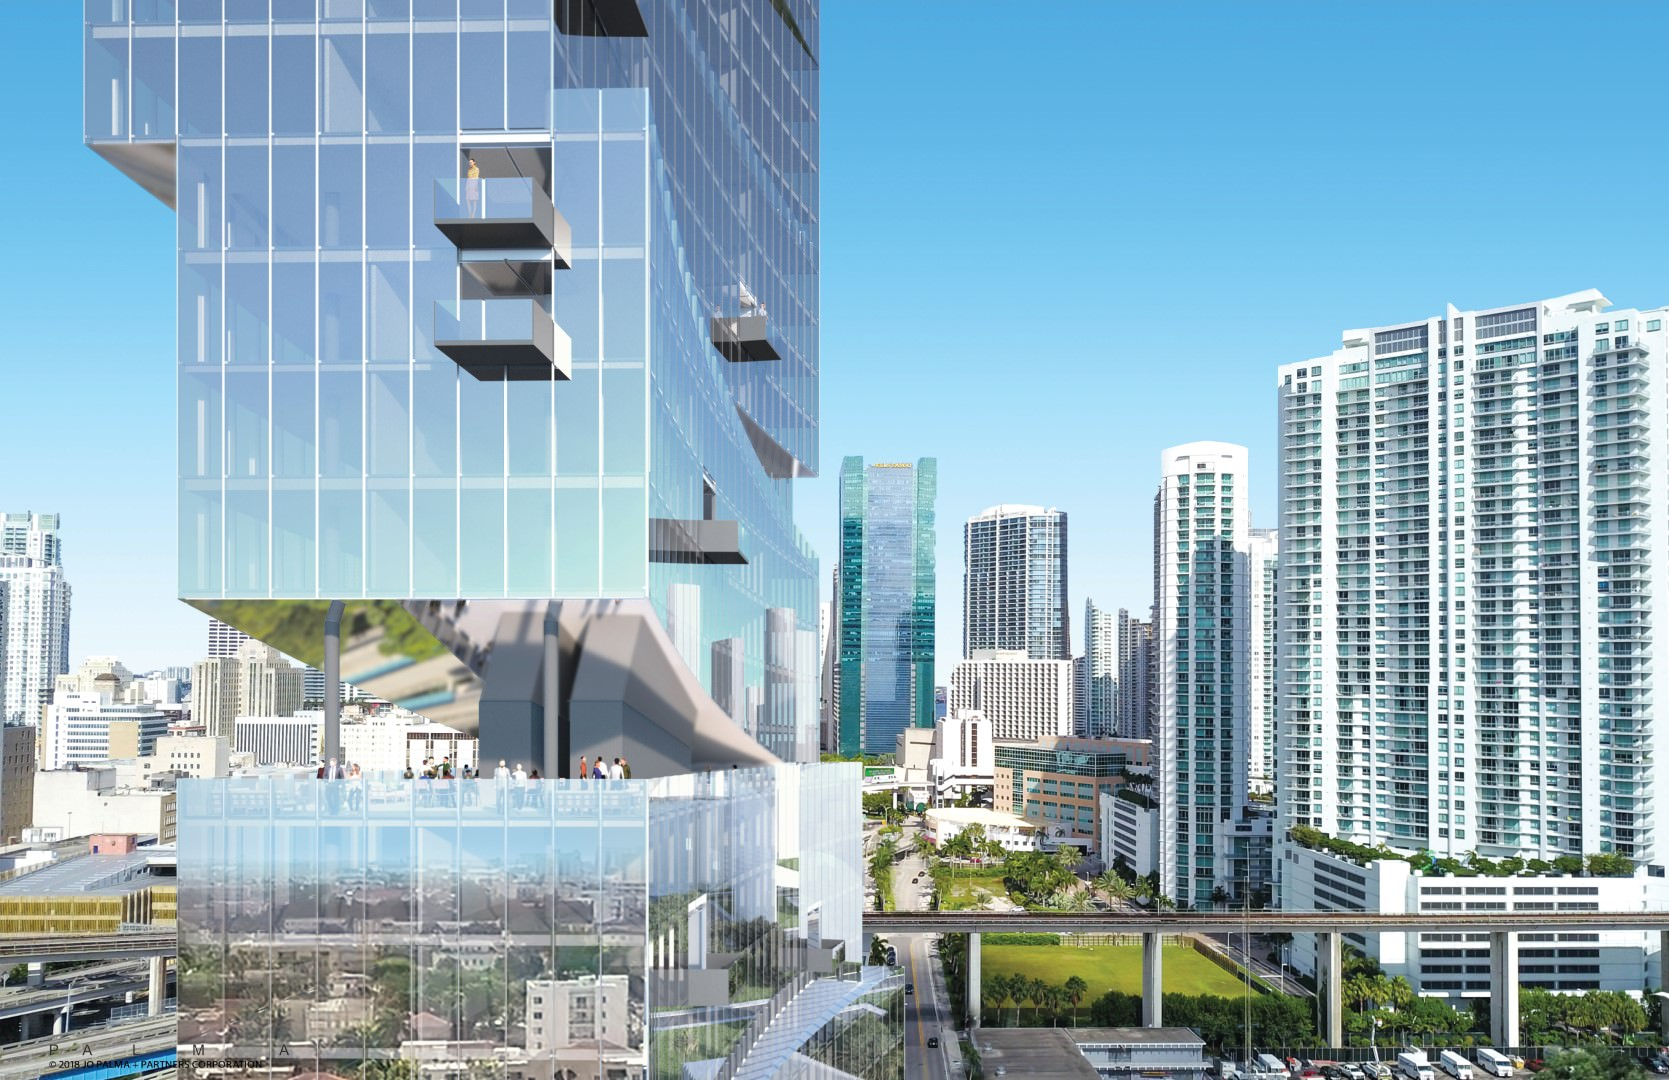 Jo Palma Tabbed To Design The Basel Miami, Reveals New Renderings Of Proposed 36-Story Tower in Downtown Miami